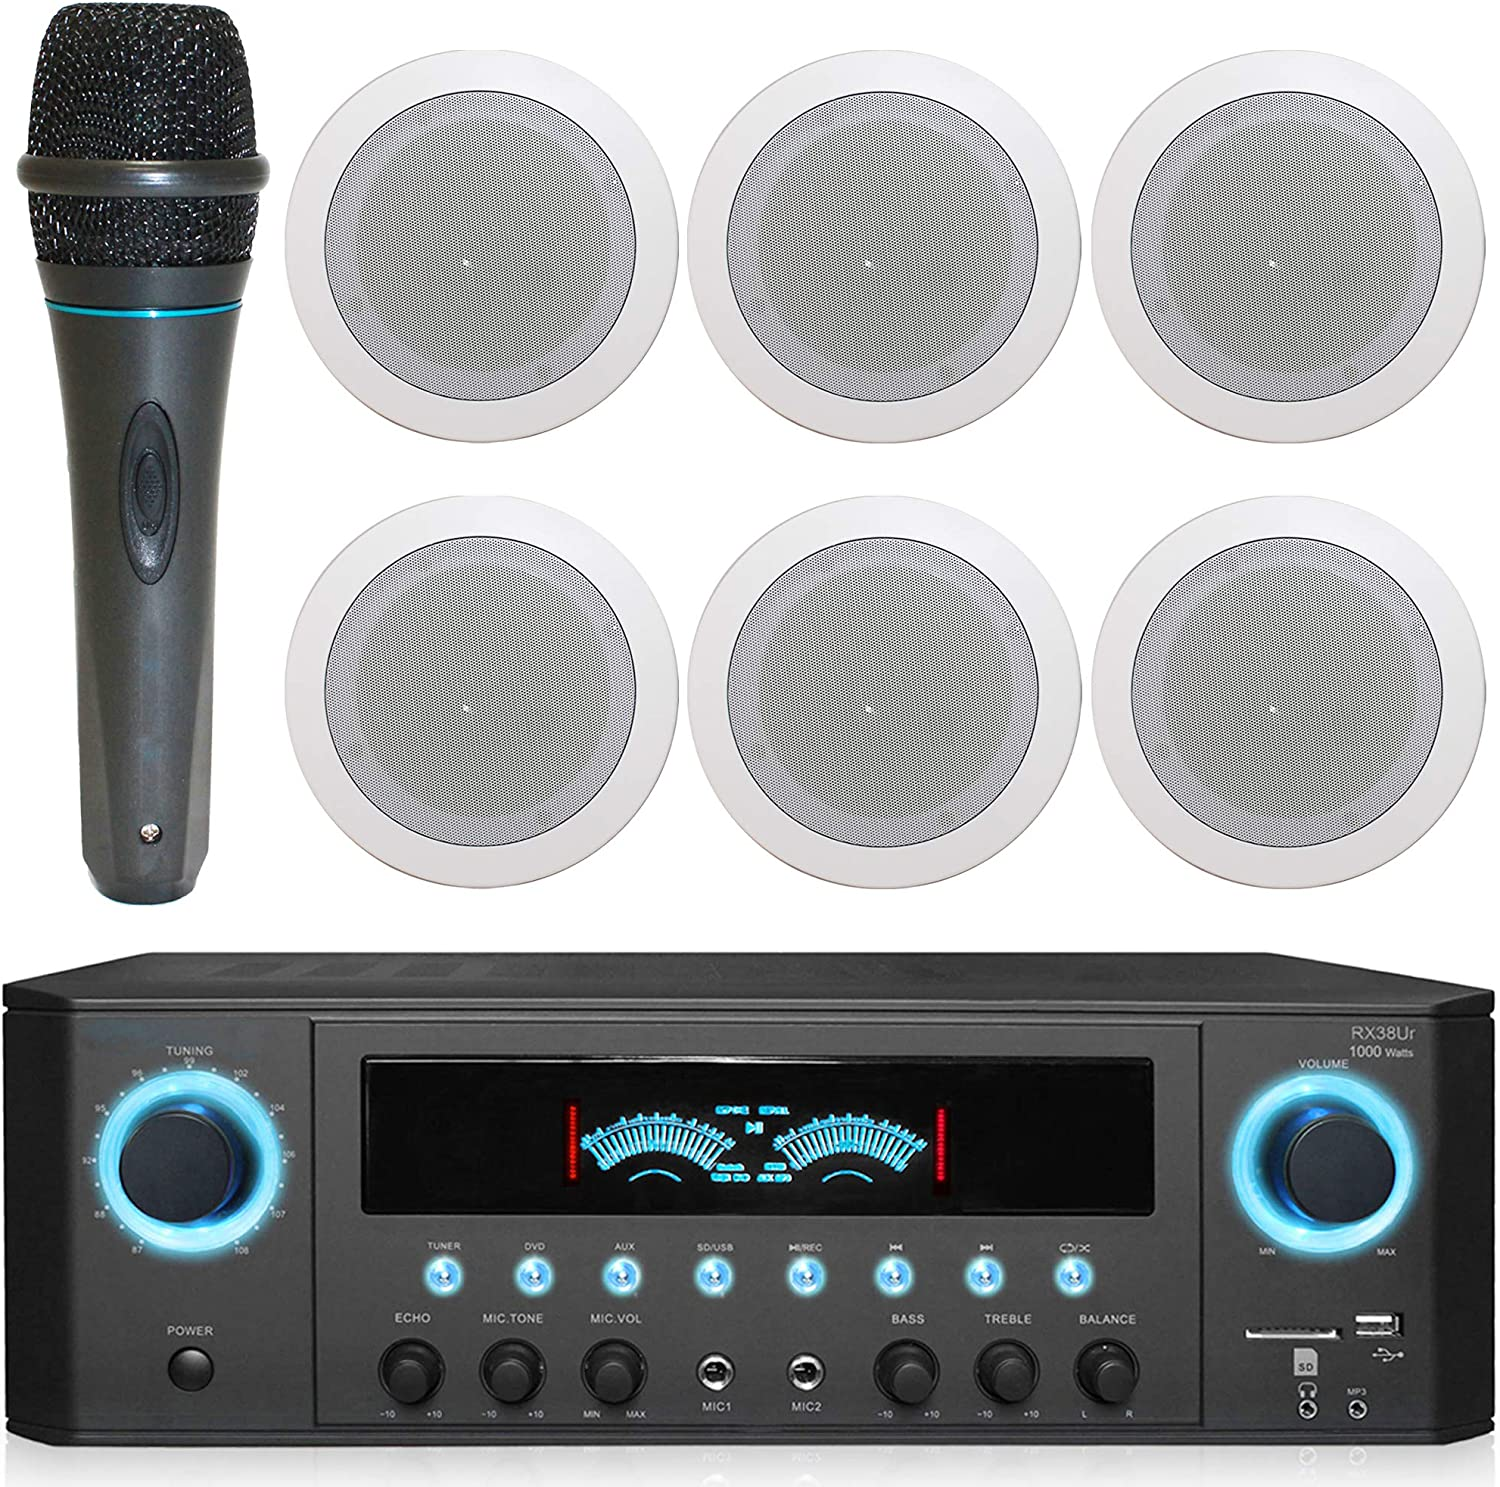 1000 Watts Home System w/USB and SD Card Inputs, (Qty 6) 6.5 Flush Mount in-Wall/in-Ceiling Stereo Speakers, Mic w/10 Ft Cable